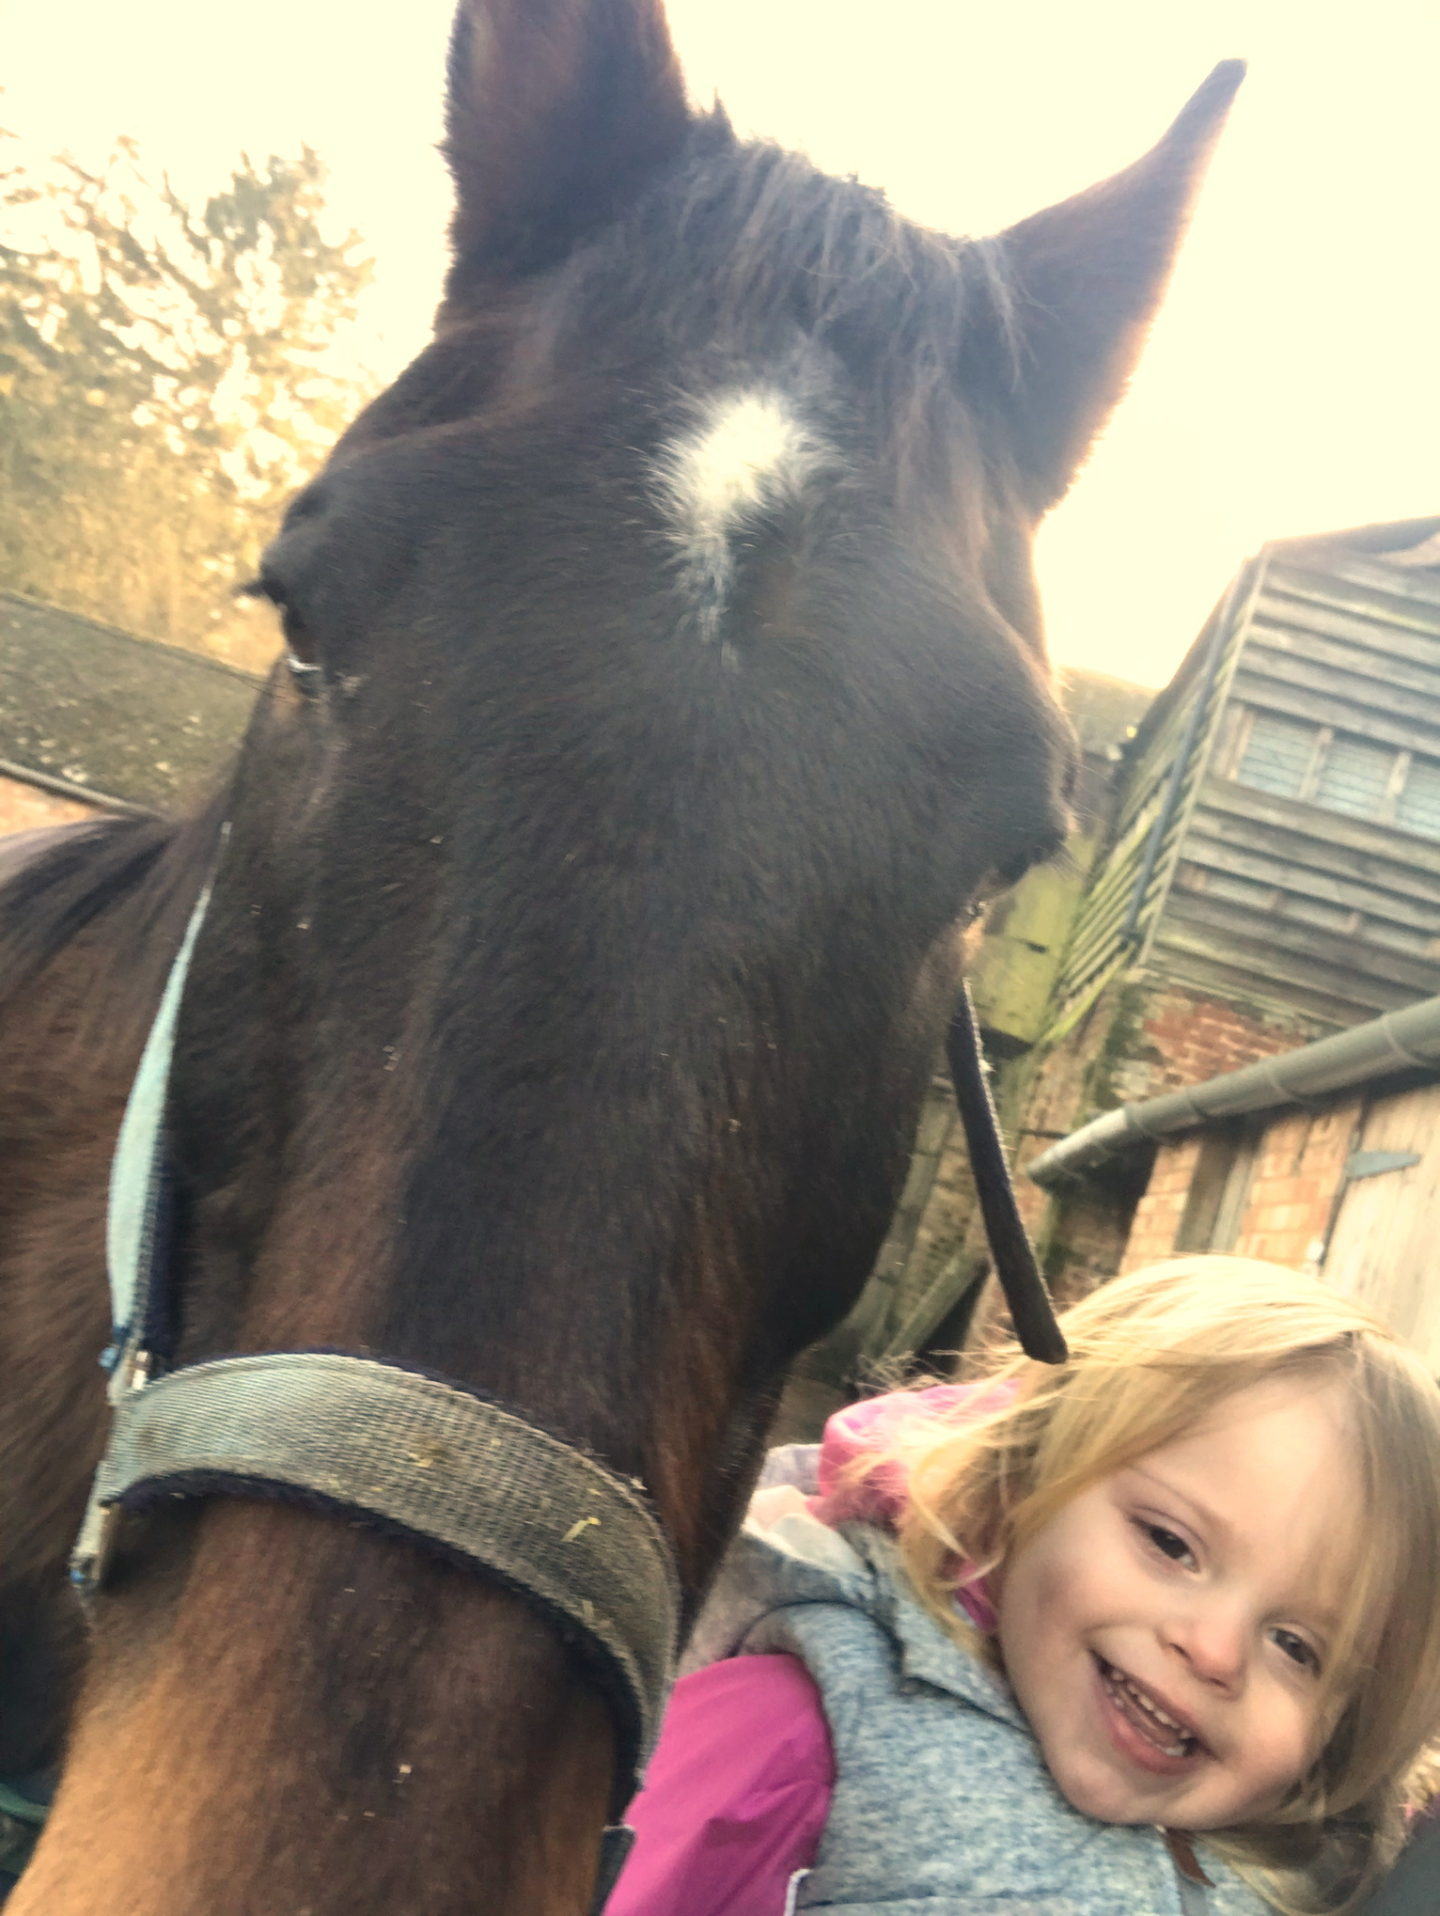 Two year old smiling in a selfie with a dark bay horse